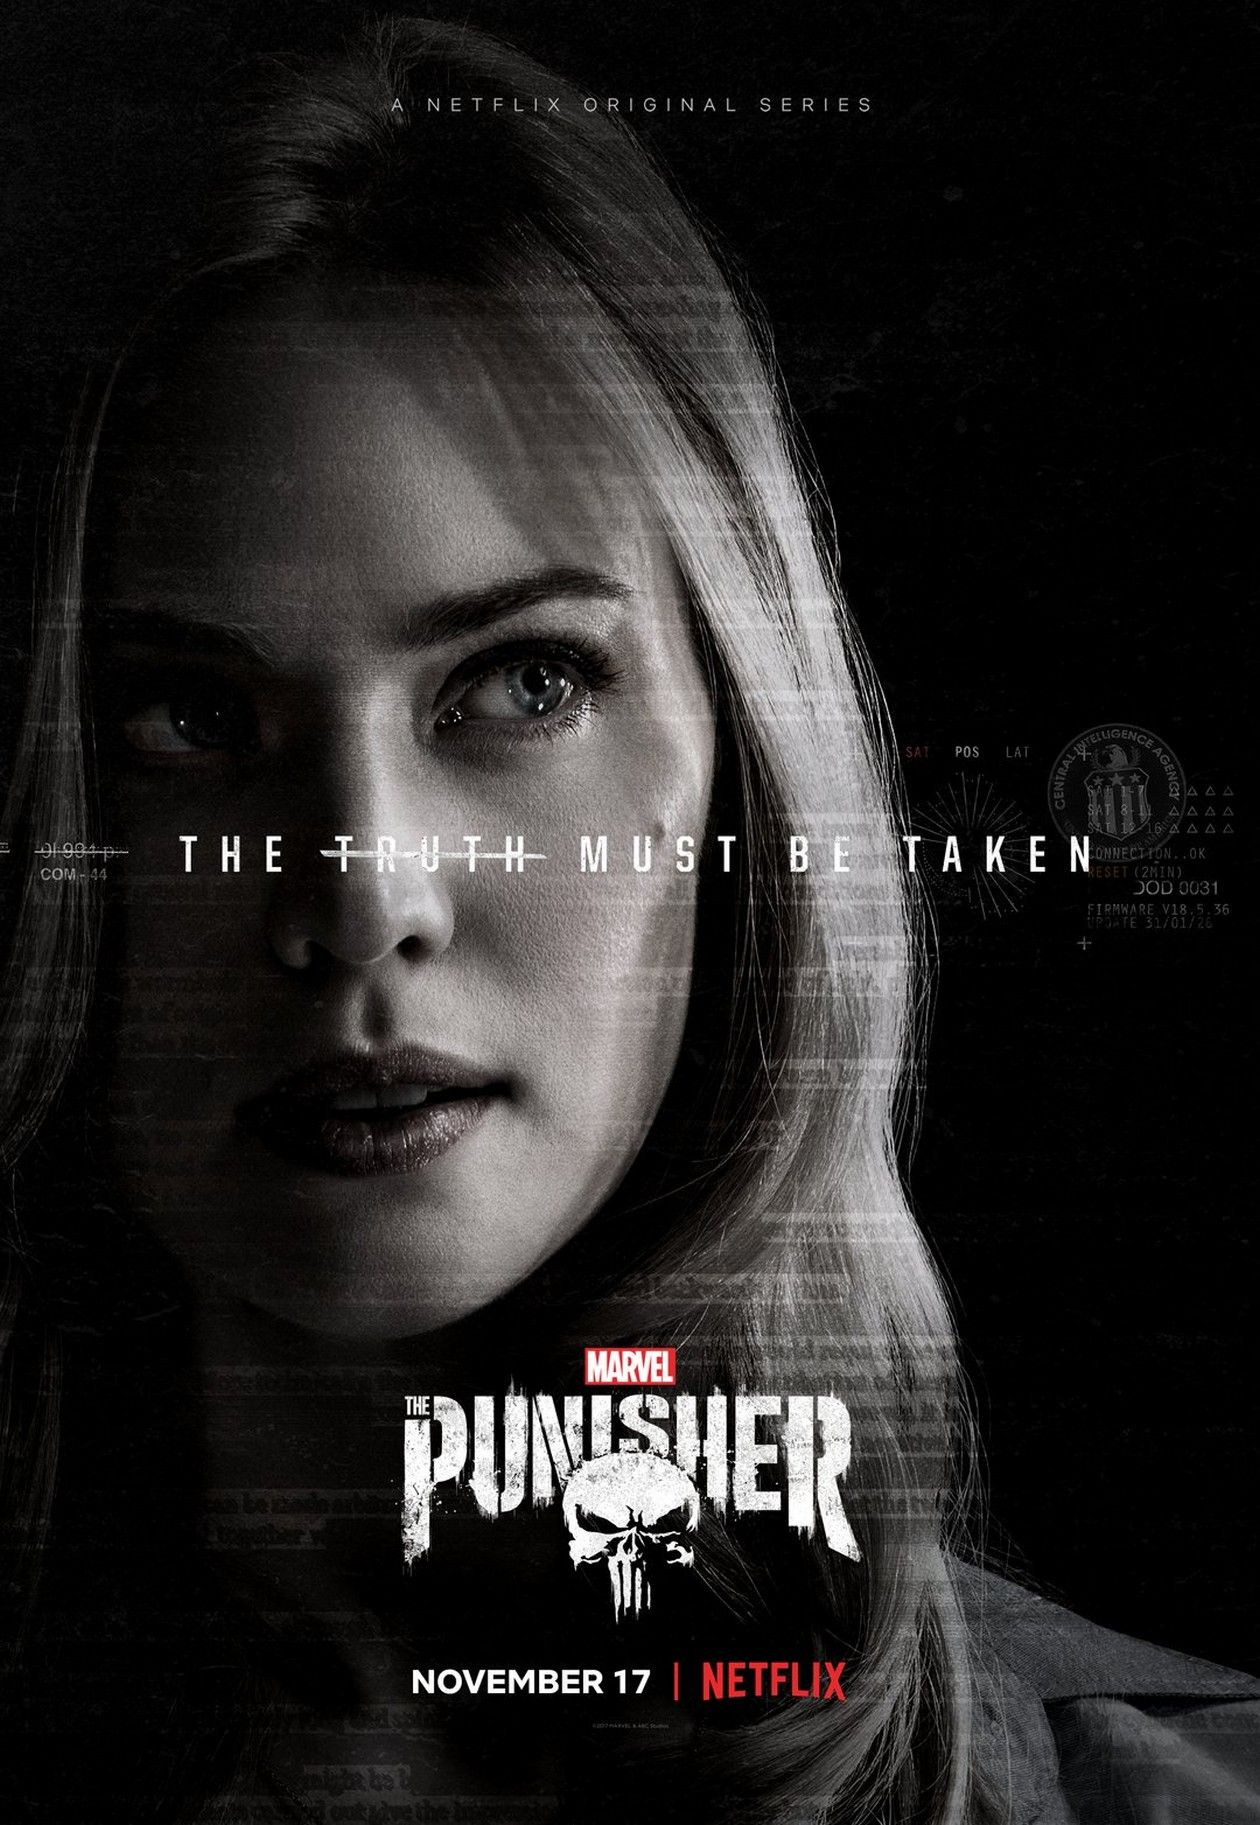 Deborah Ann Woll  The Punisher : Karen Page / Marvel NETFLIX Original Serie 2017